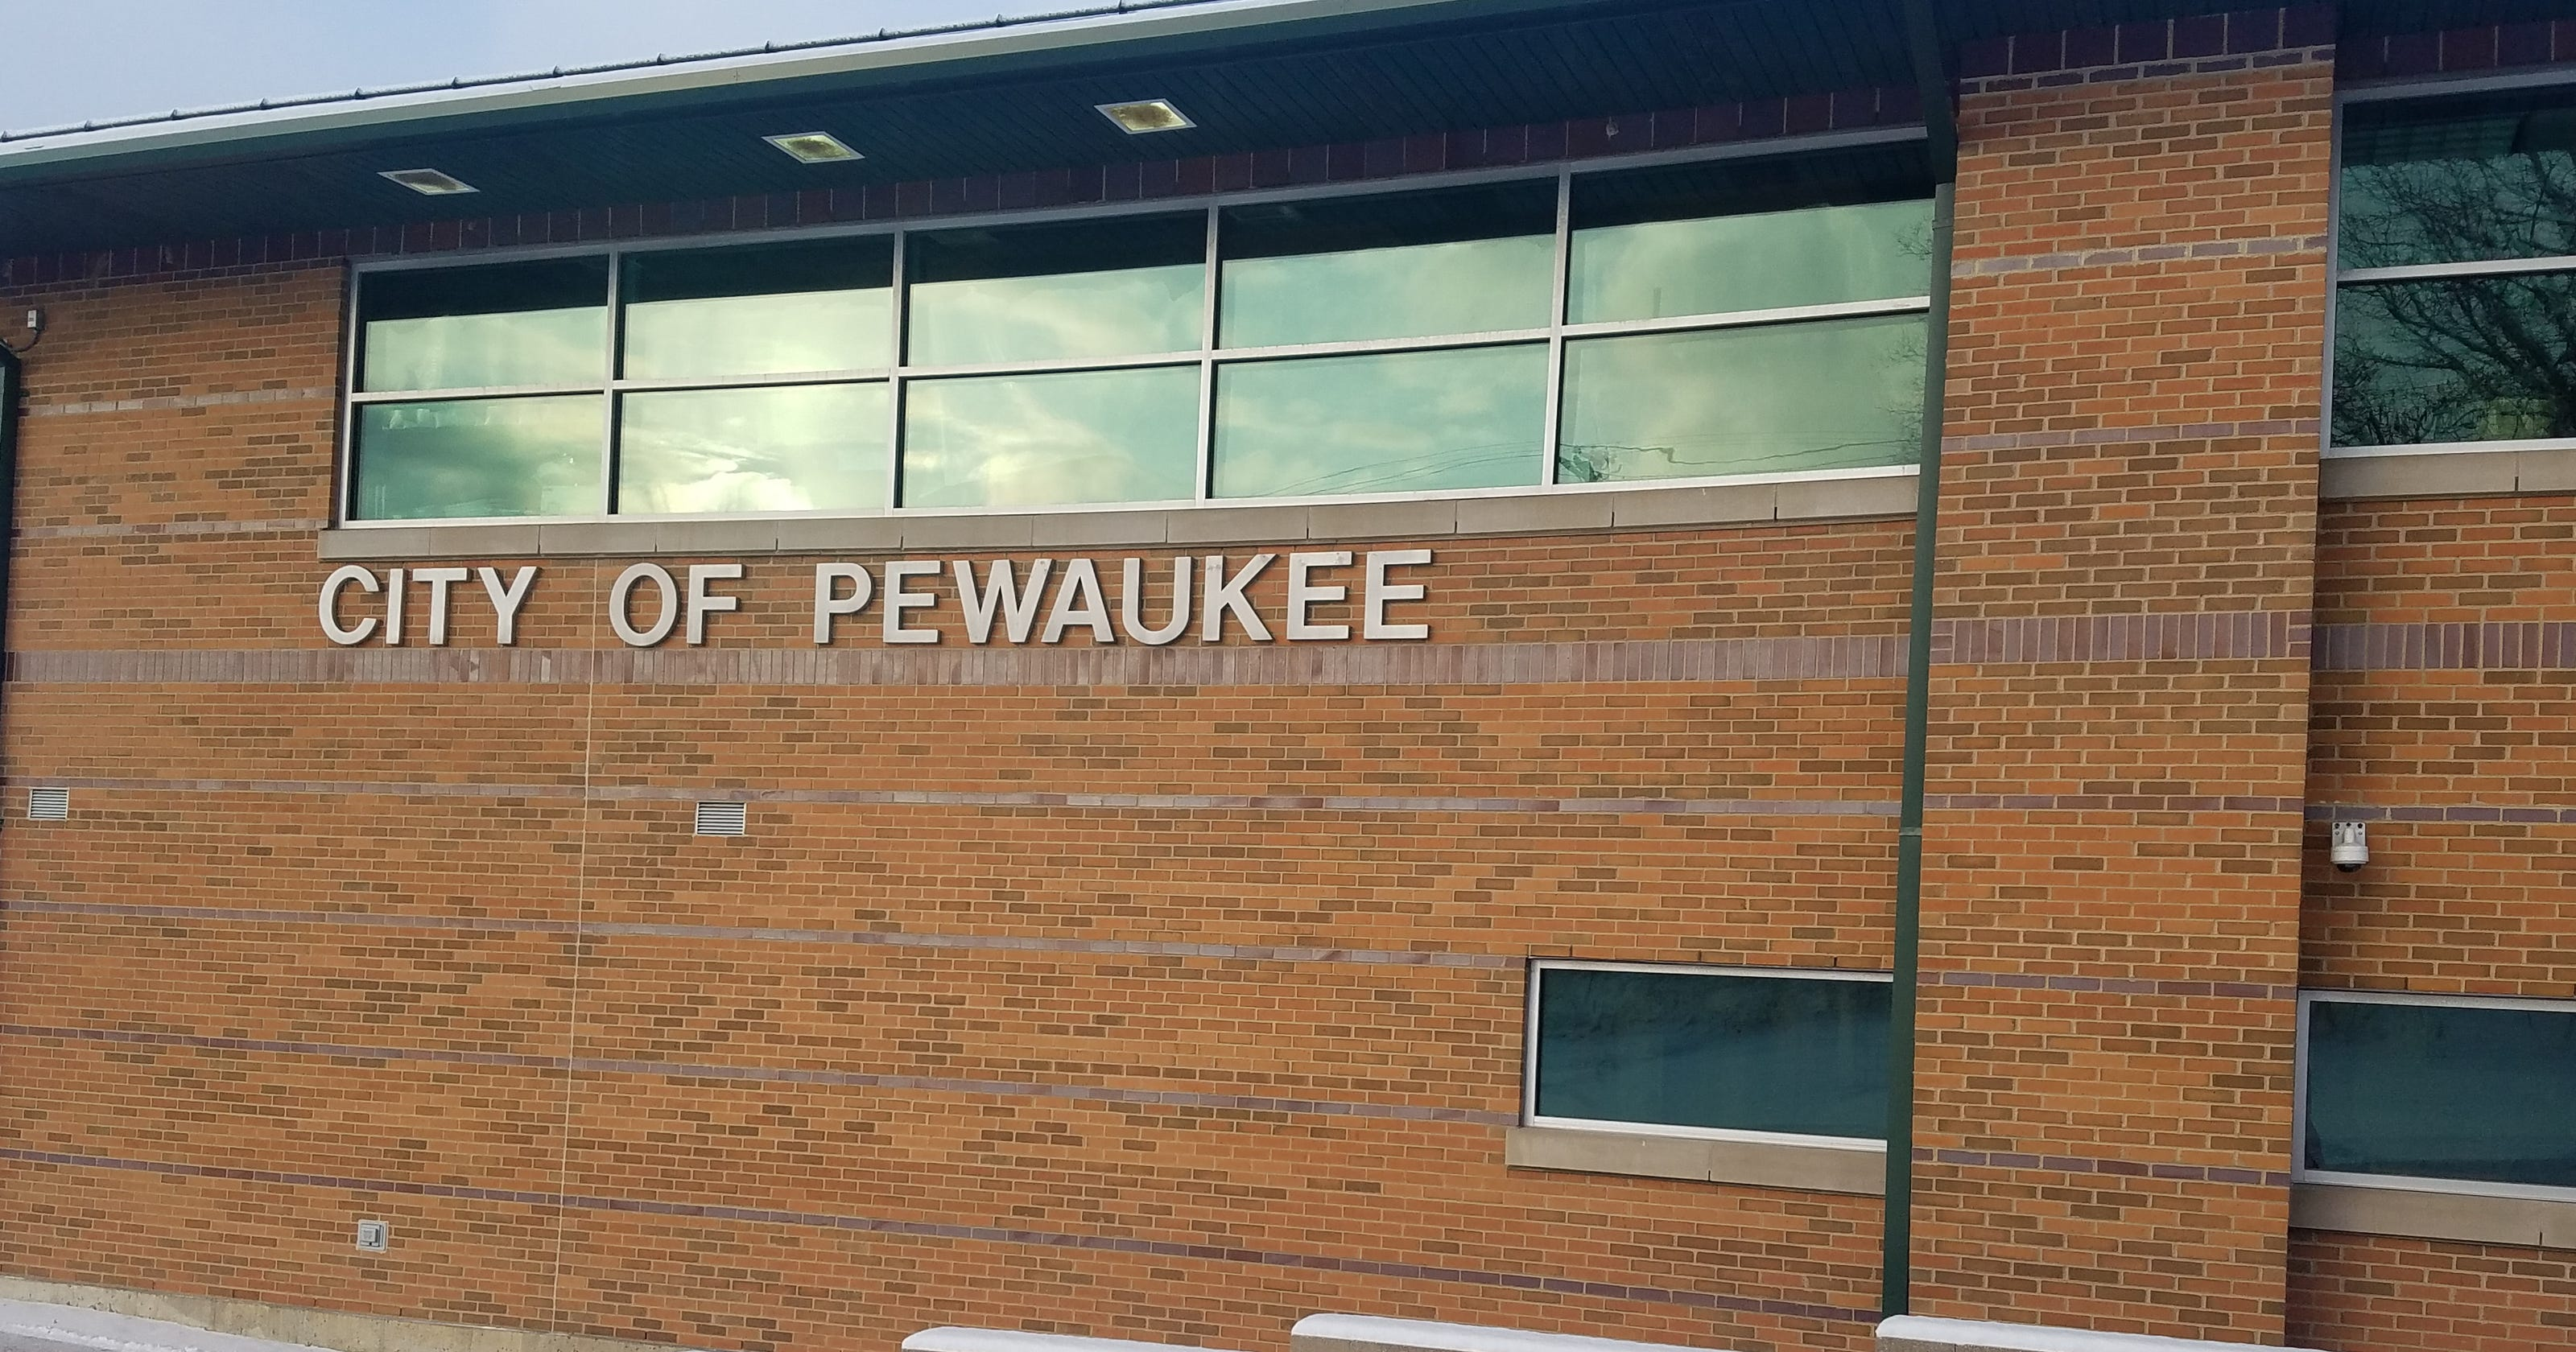 Pewaukee agrees to spend $1.4 million to fix city well\'s radium issue